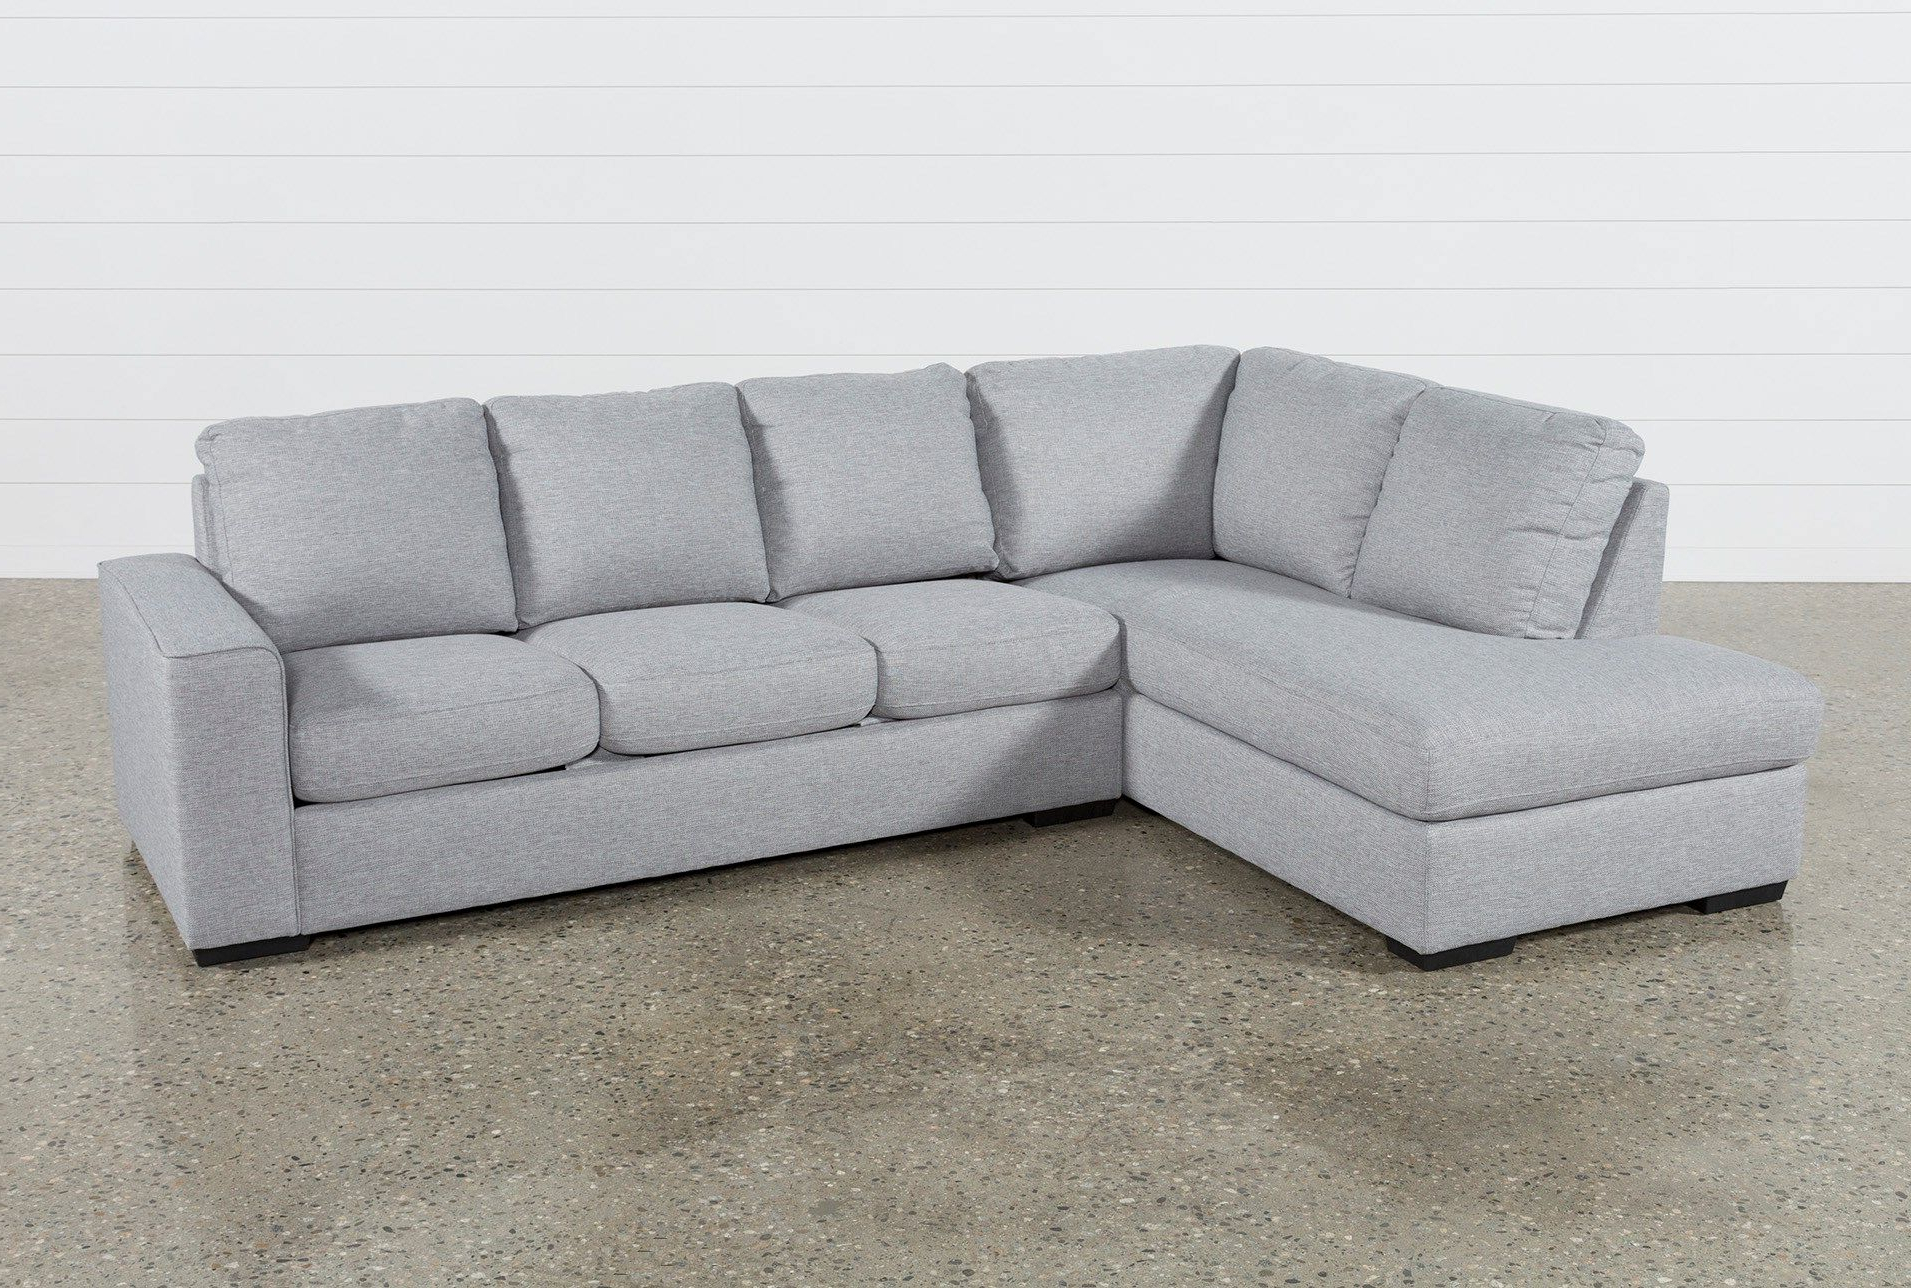 2019 Aquarius Dark Grey 2 Piece Sectionals With Raf Chaise Regarding Lucy Grey 2 Piece Sectional W/laf Chaise In  (View 1 of 20)